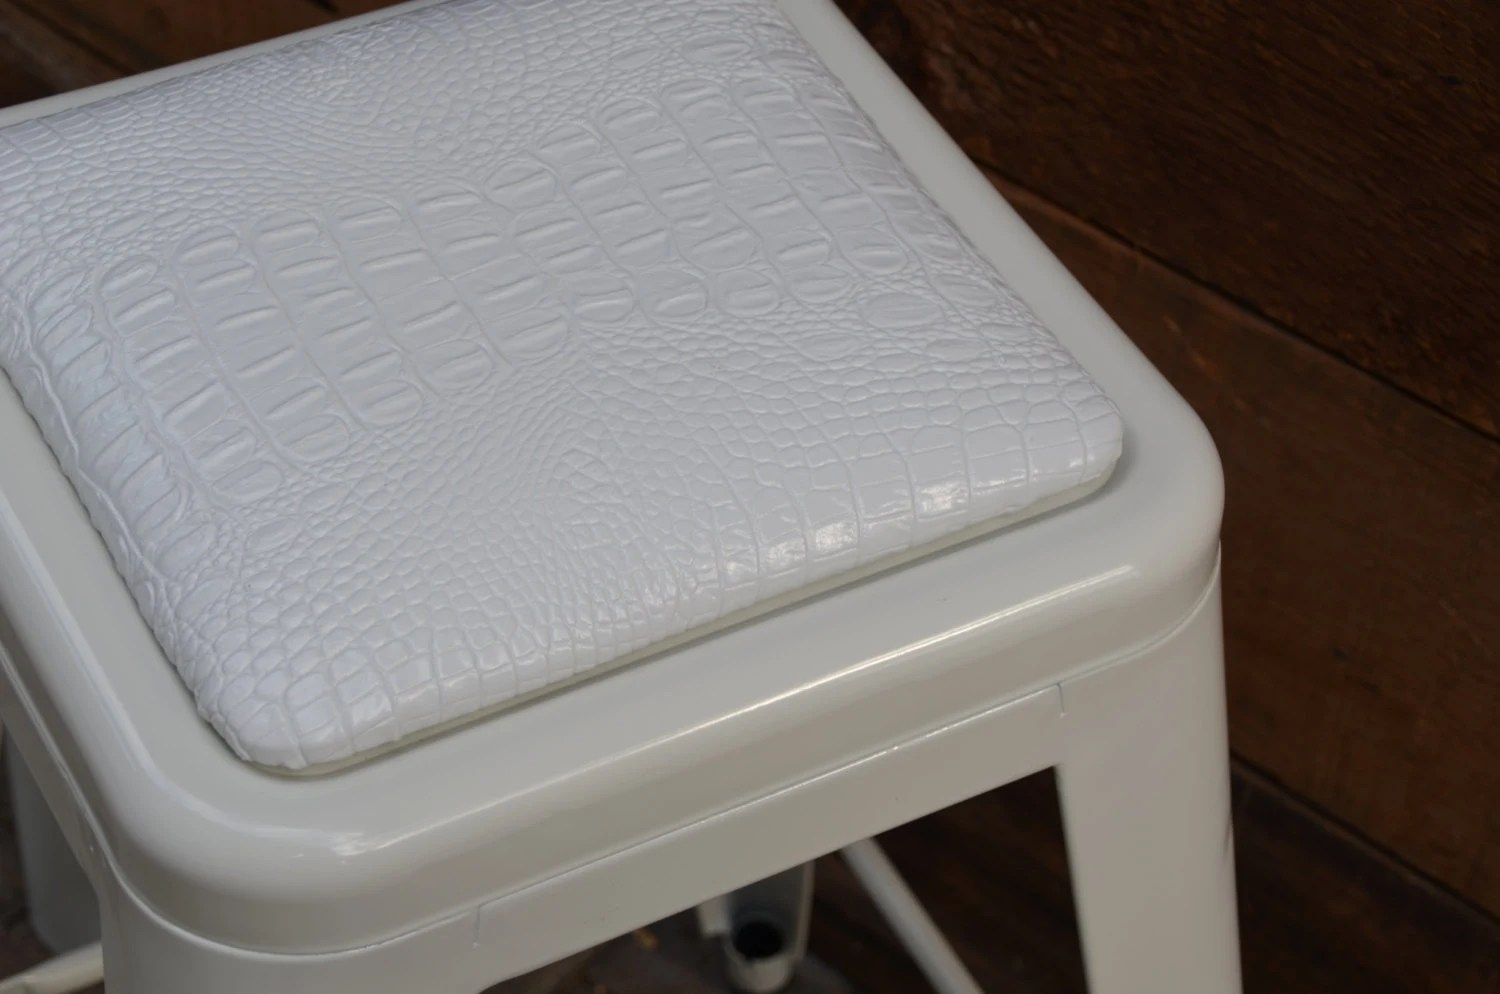 tolix chair cushion shaker style chairs custom seat cushions in the fabric of your choice